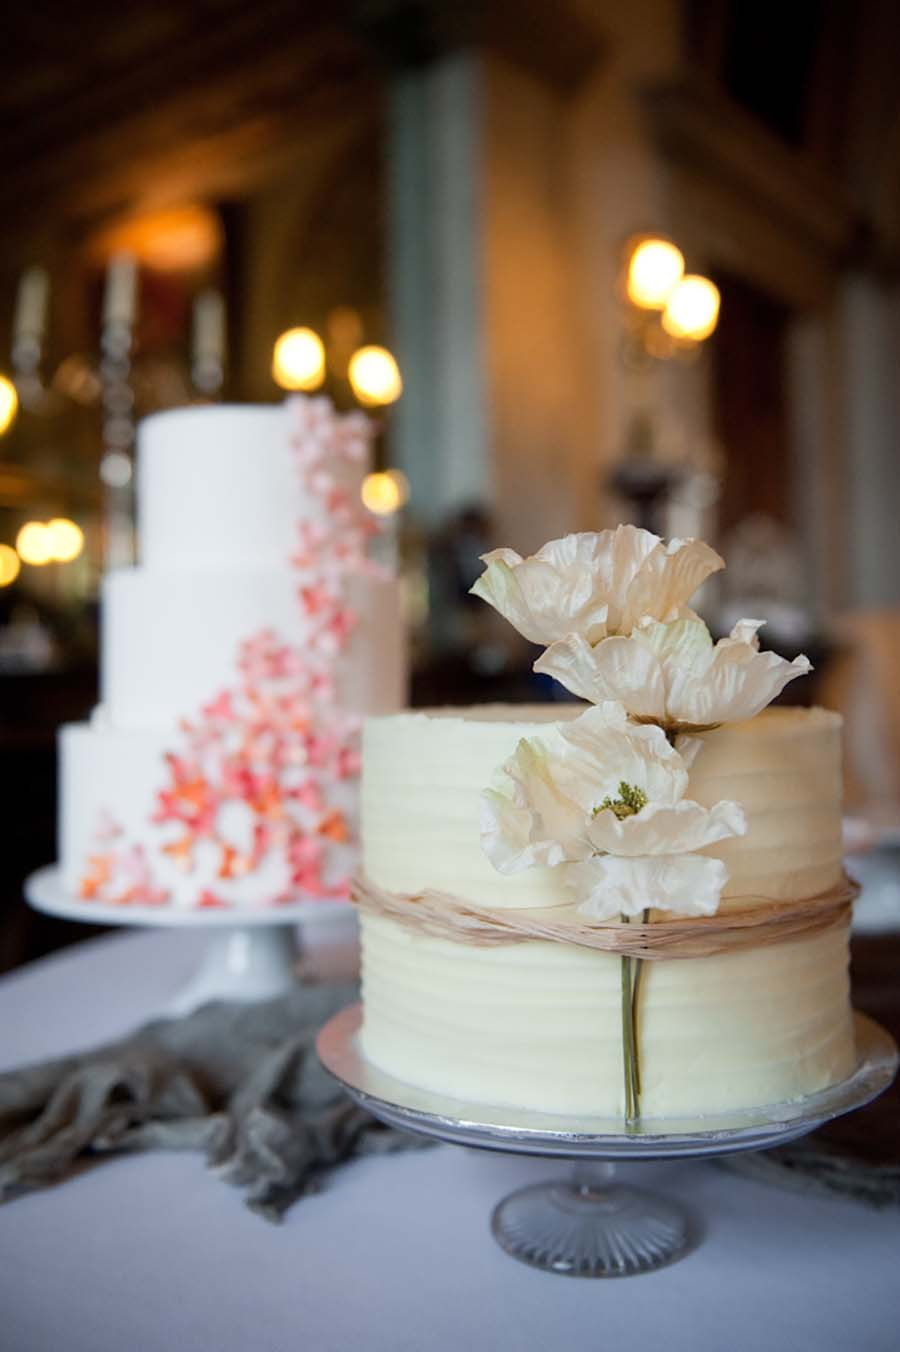 Buckinghams-at-belvoir-castle-wedding-fair-rachael-connerton-photography-102